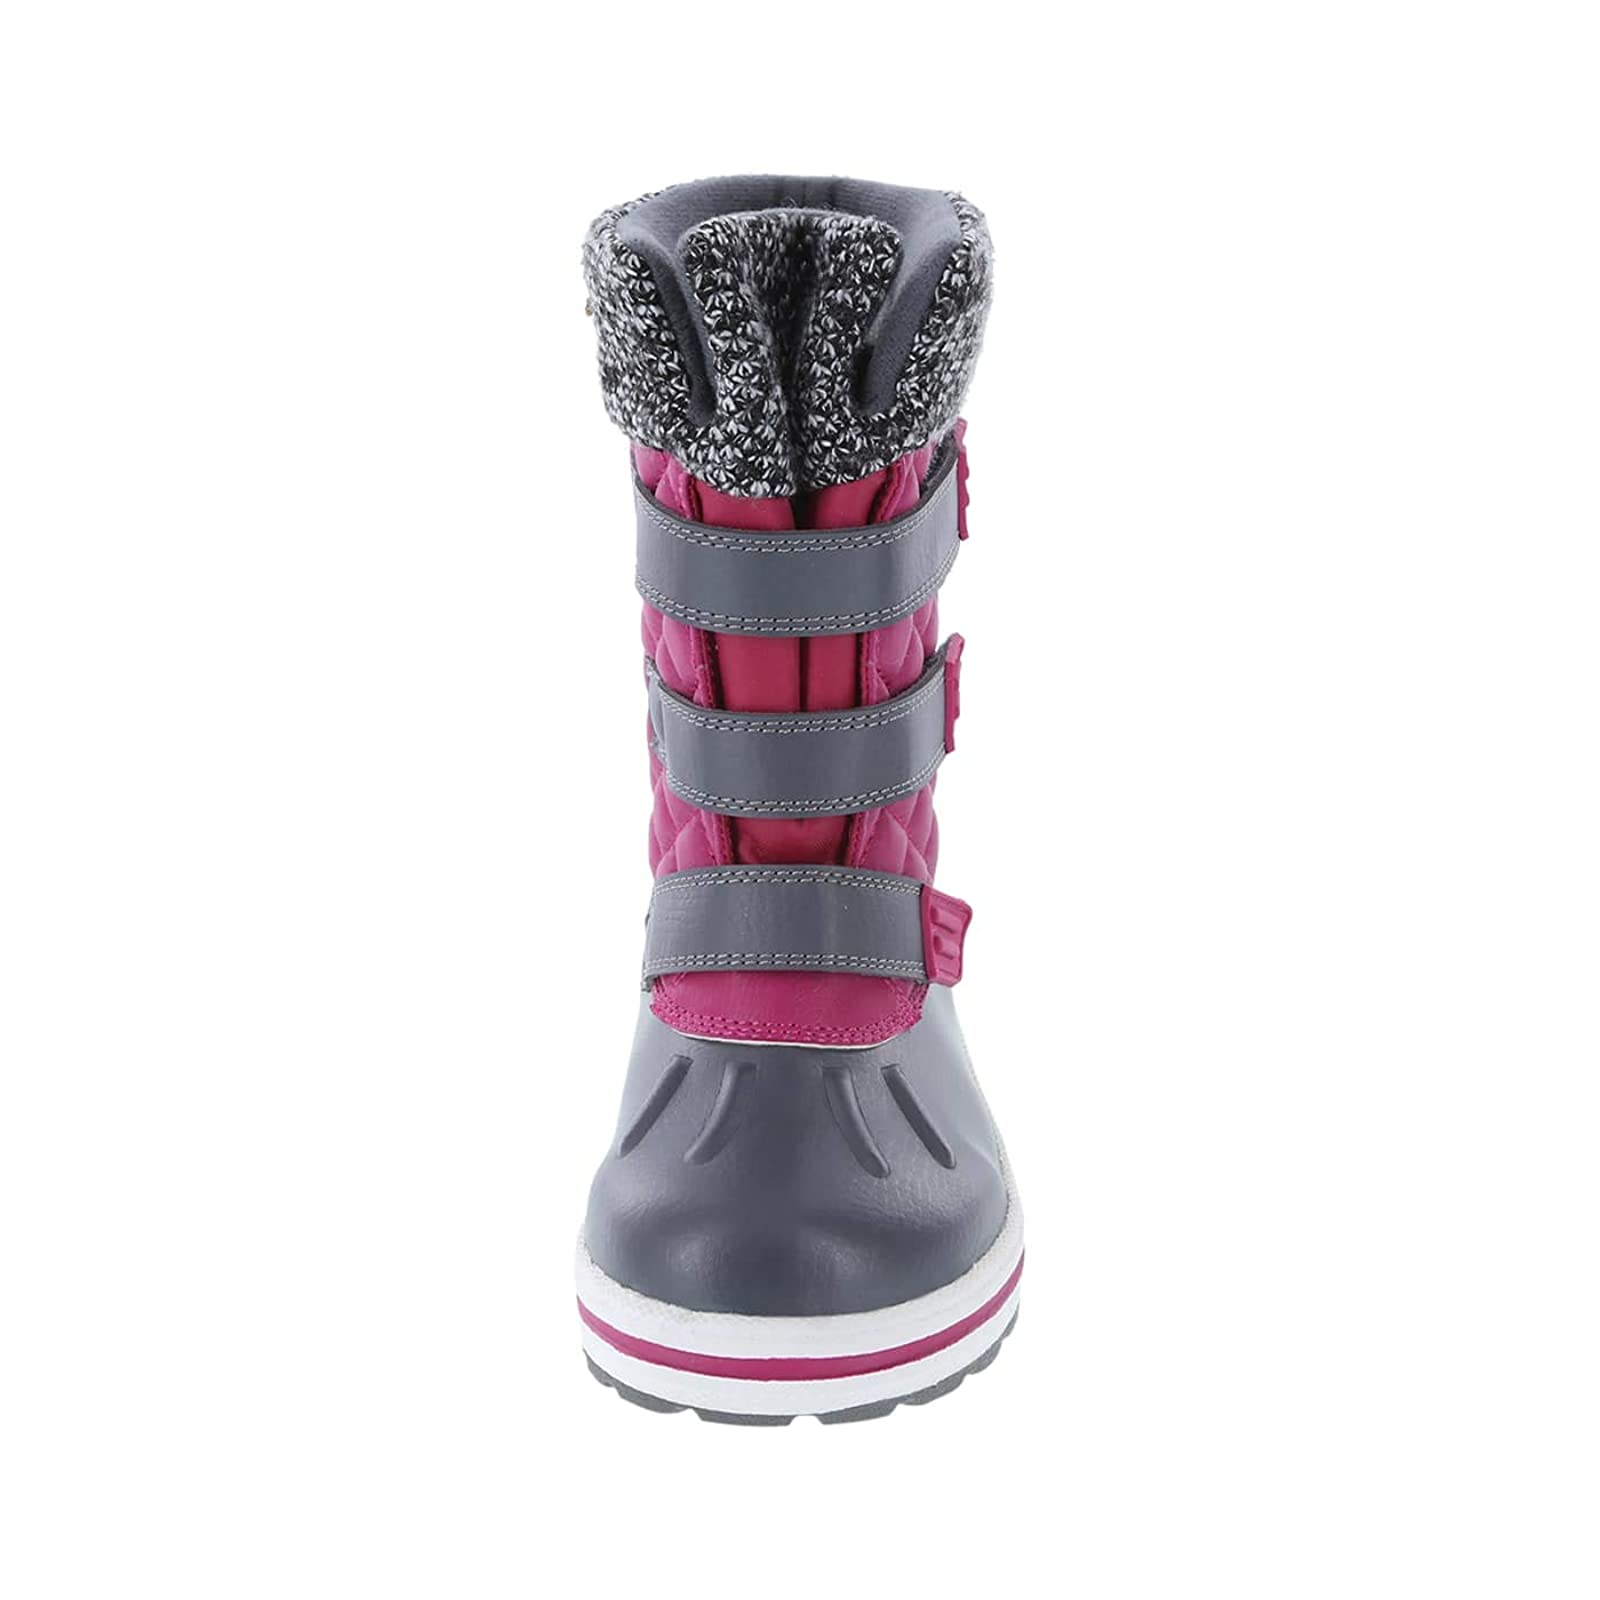 Rugged Outback Raspberry Grey Girls' Toddler -30 177447120 - 3